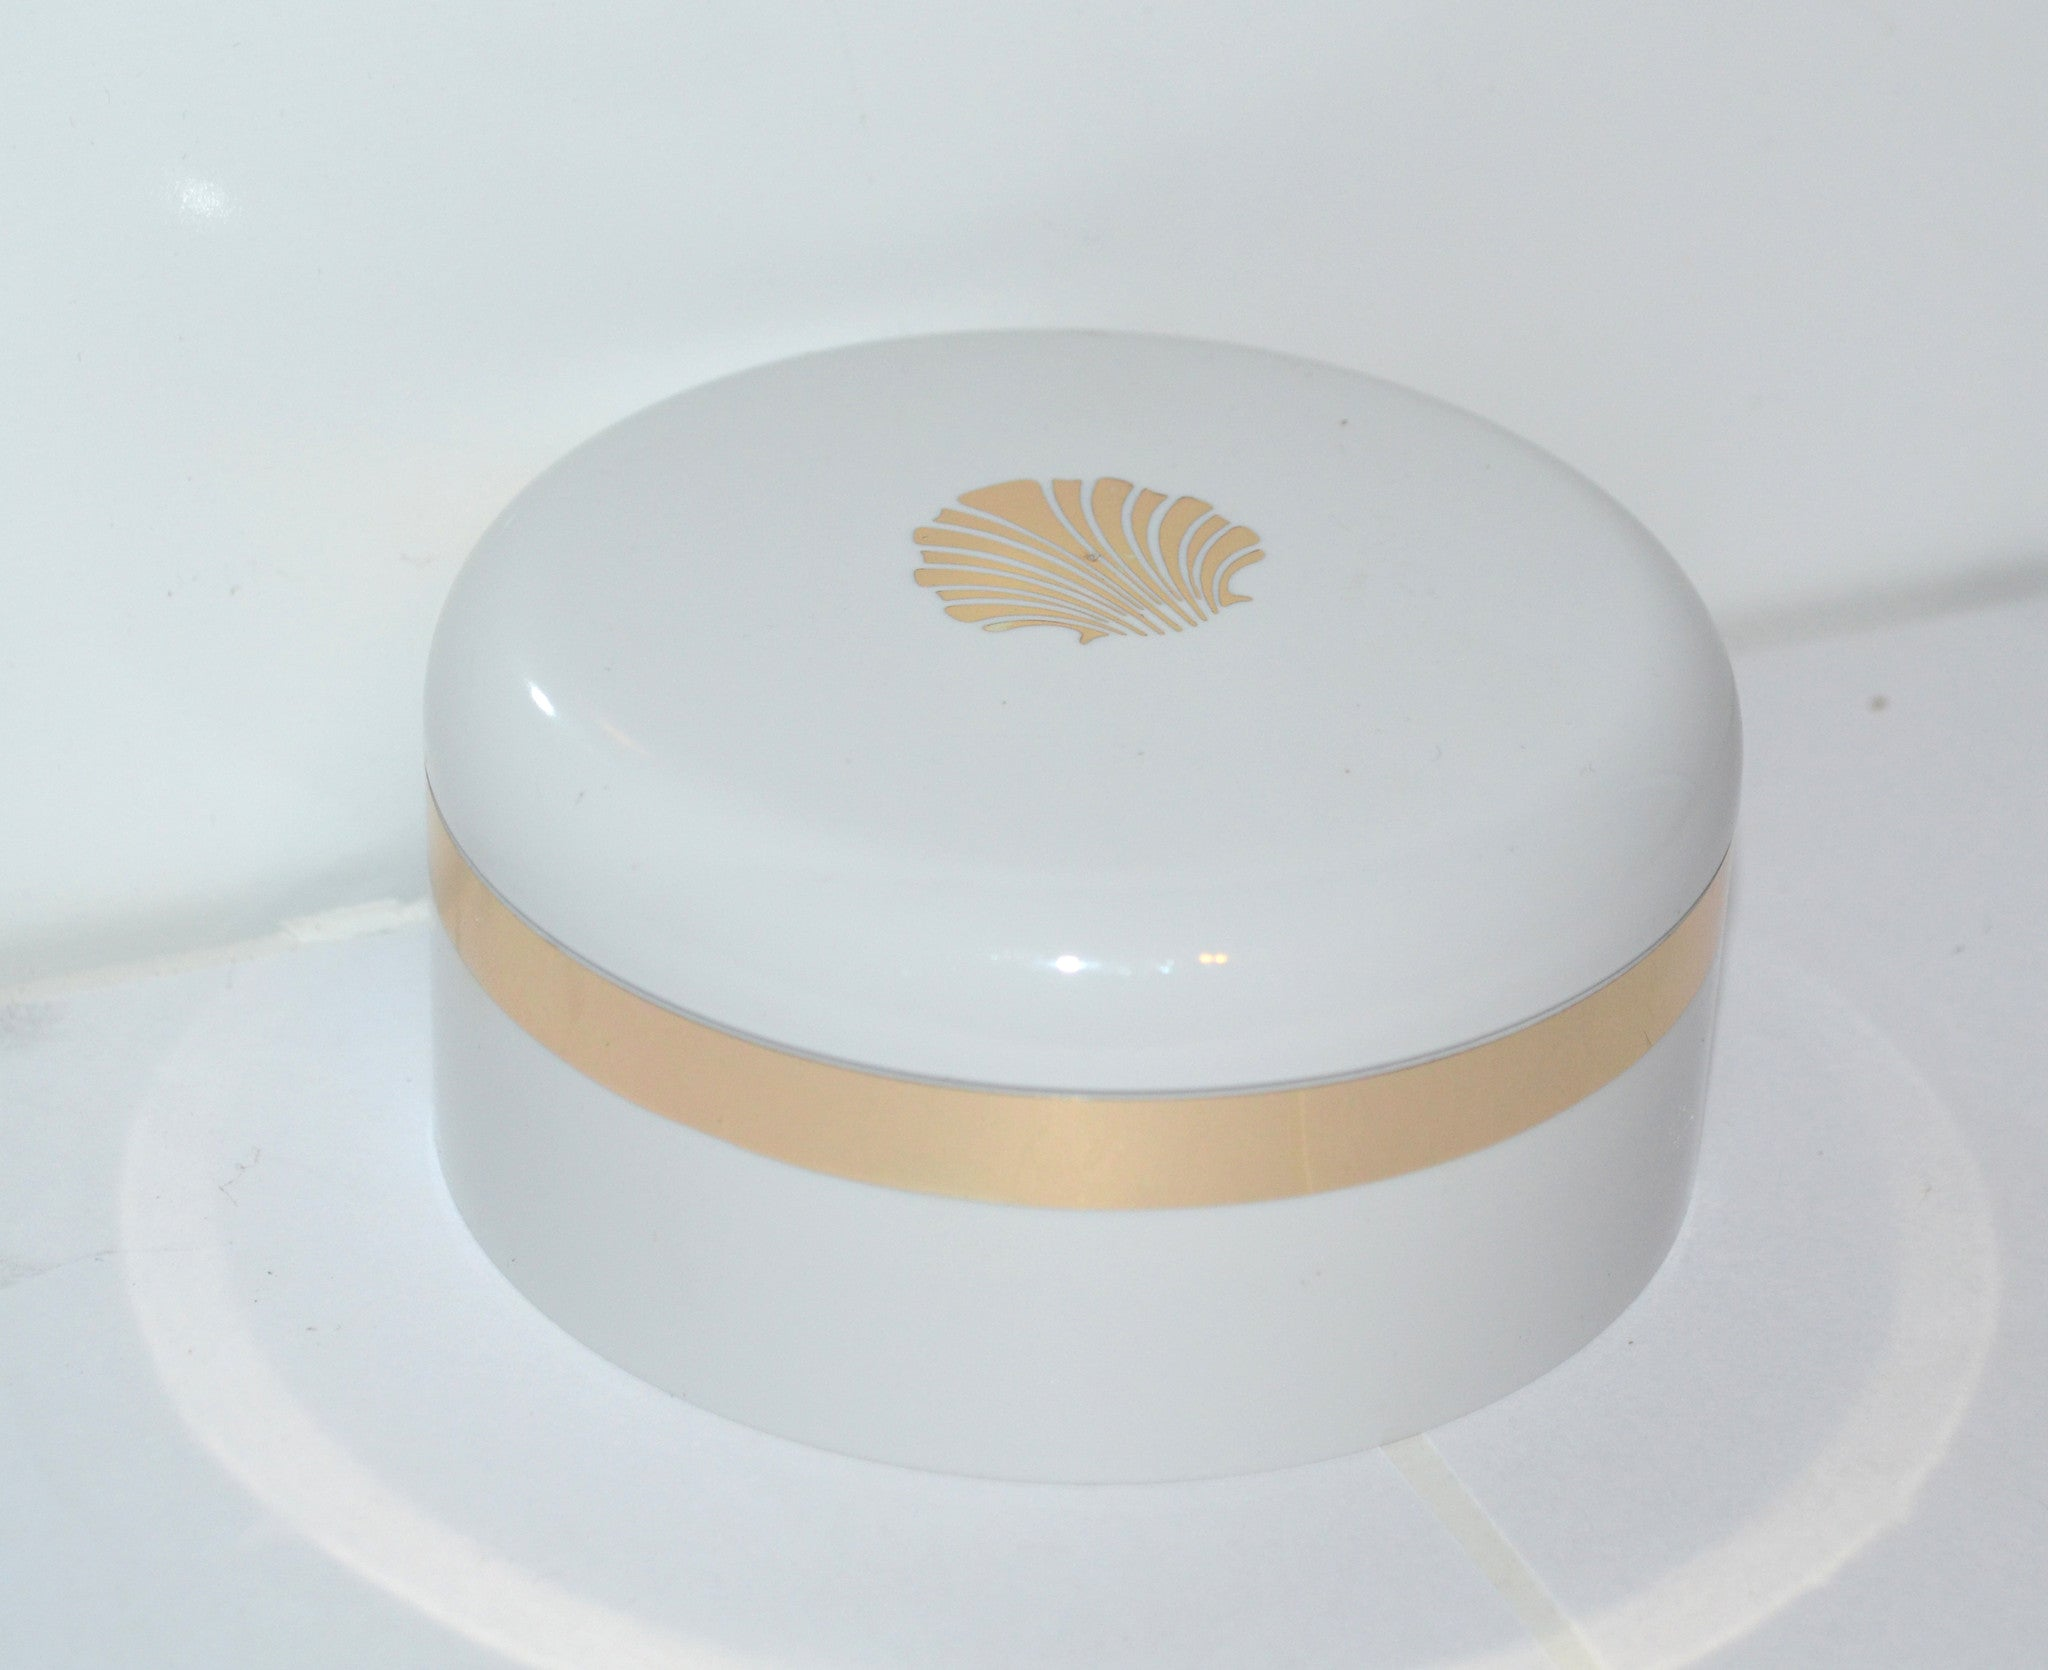 Estee Lauder White Linen Perfumed Body Powder